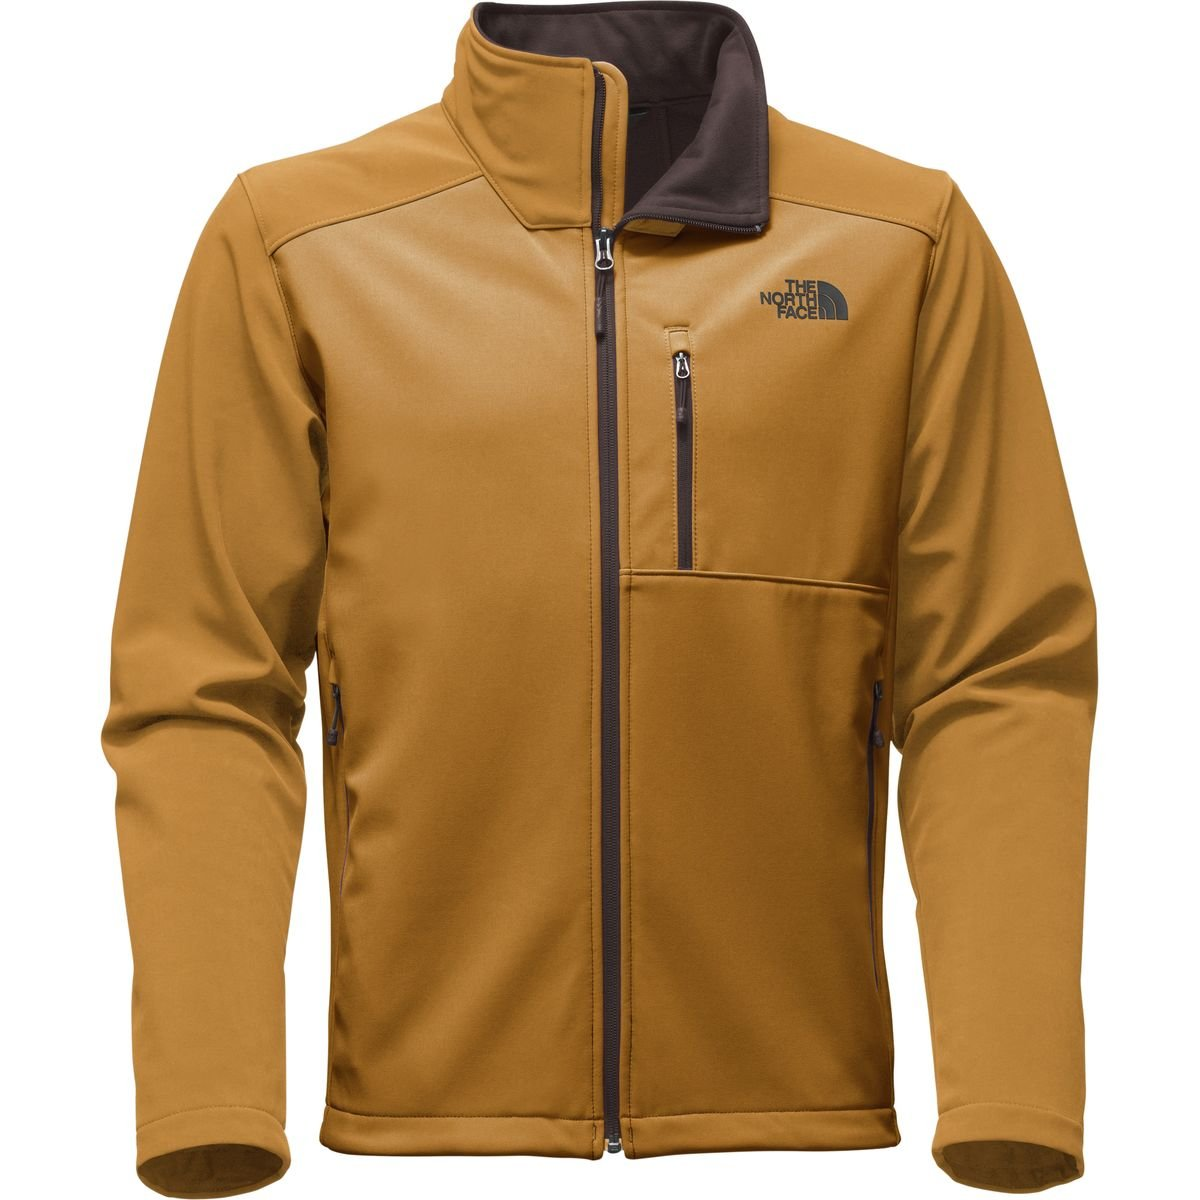 The North Face Apex Bionic Soft Shell Jacket – Men 's B01NBC8QSA XX-Large|Golden Brown/Golden Brown Golden Brown/Golden Brown XX-Large